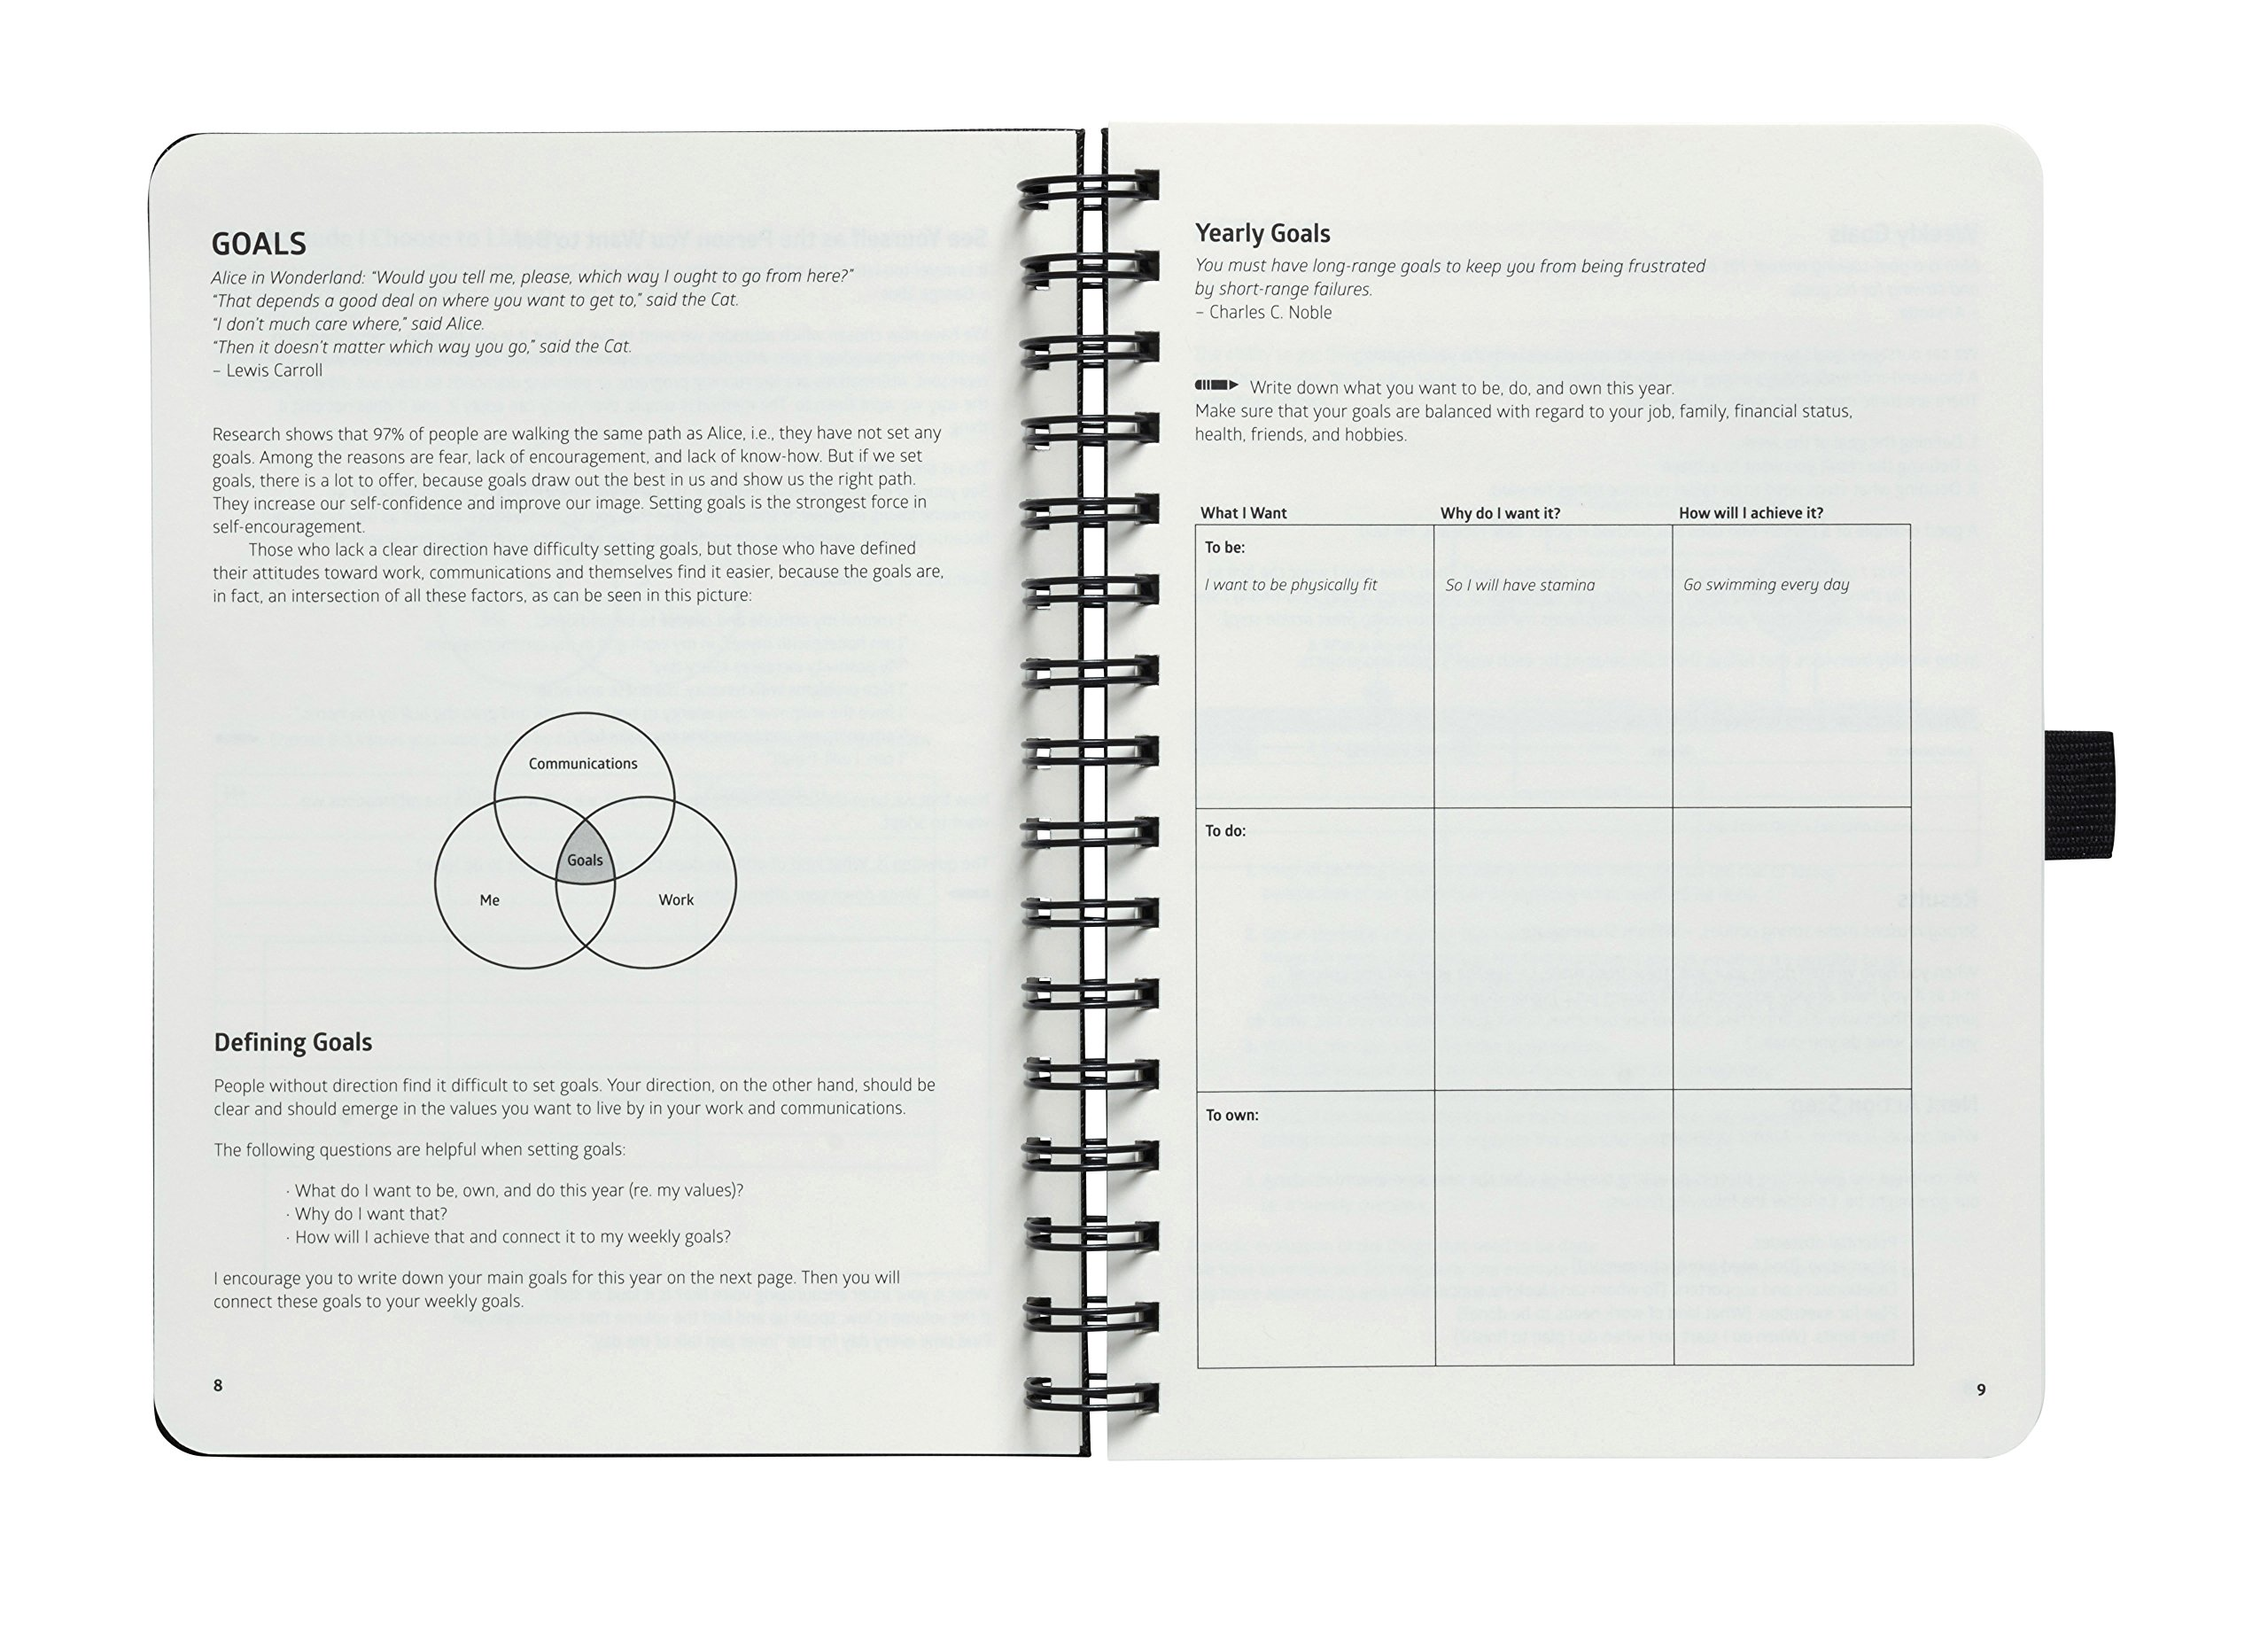 clearance sale action day planner 2018 worlds best goals